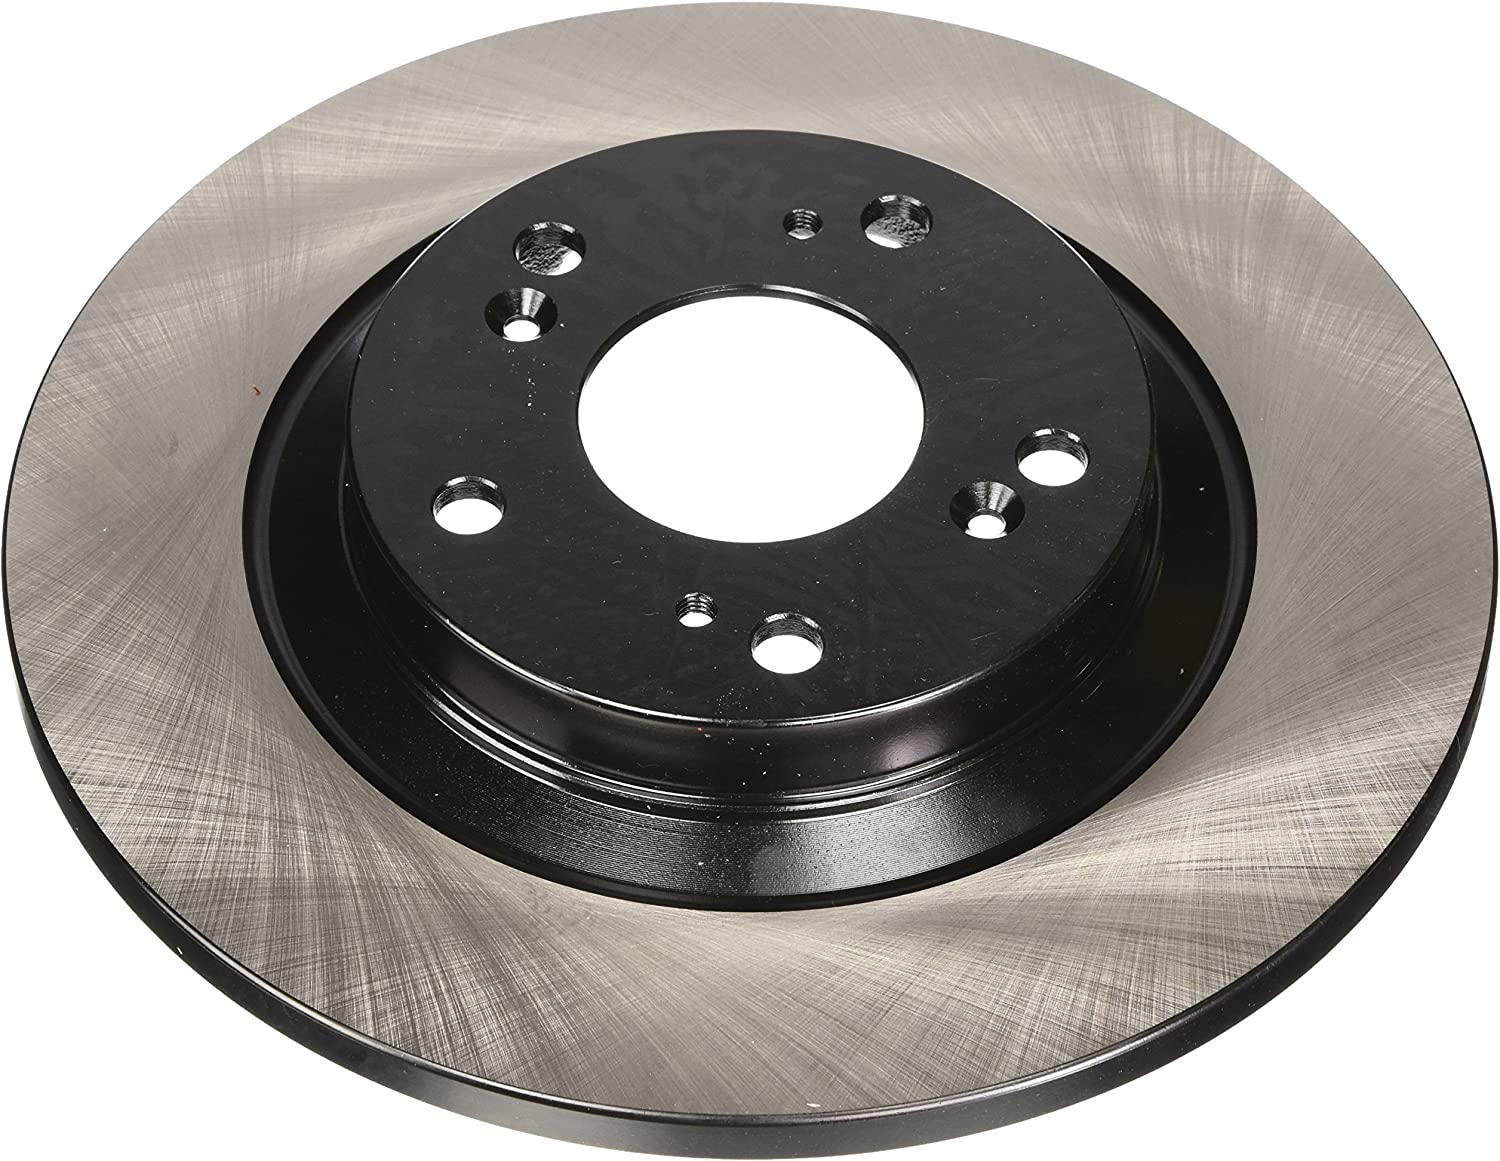 Centric Parts 120.40068 Premium Brake Rotor with E-Coating